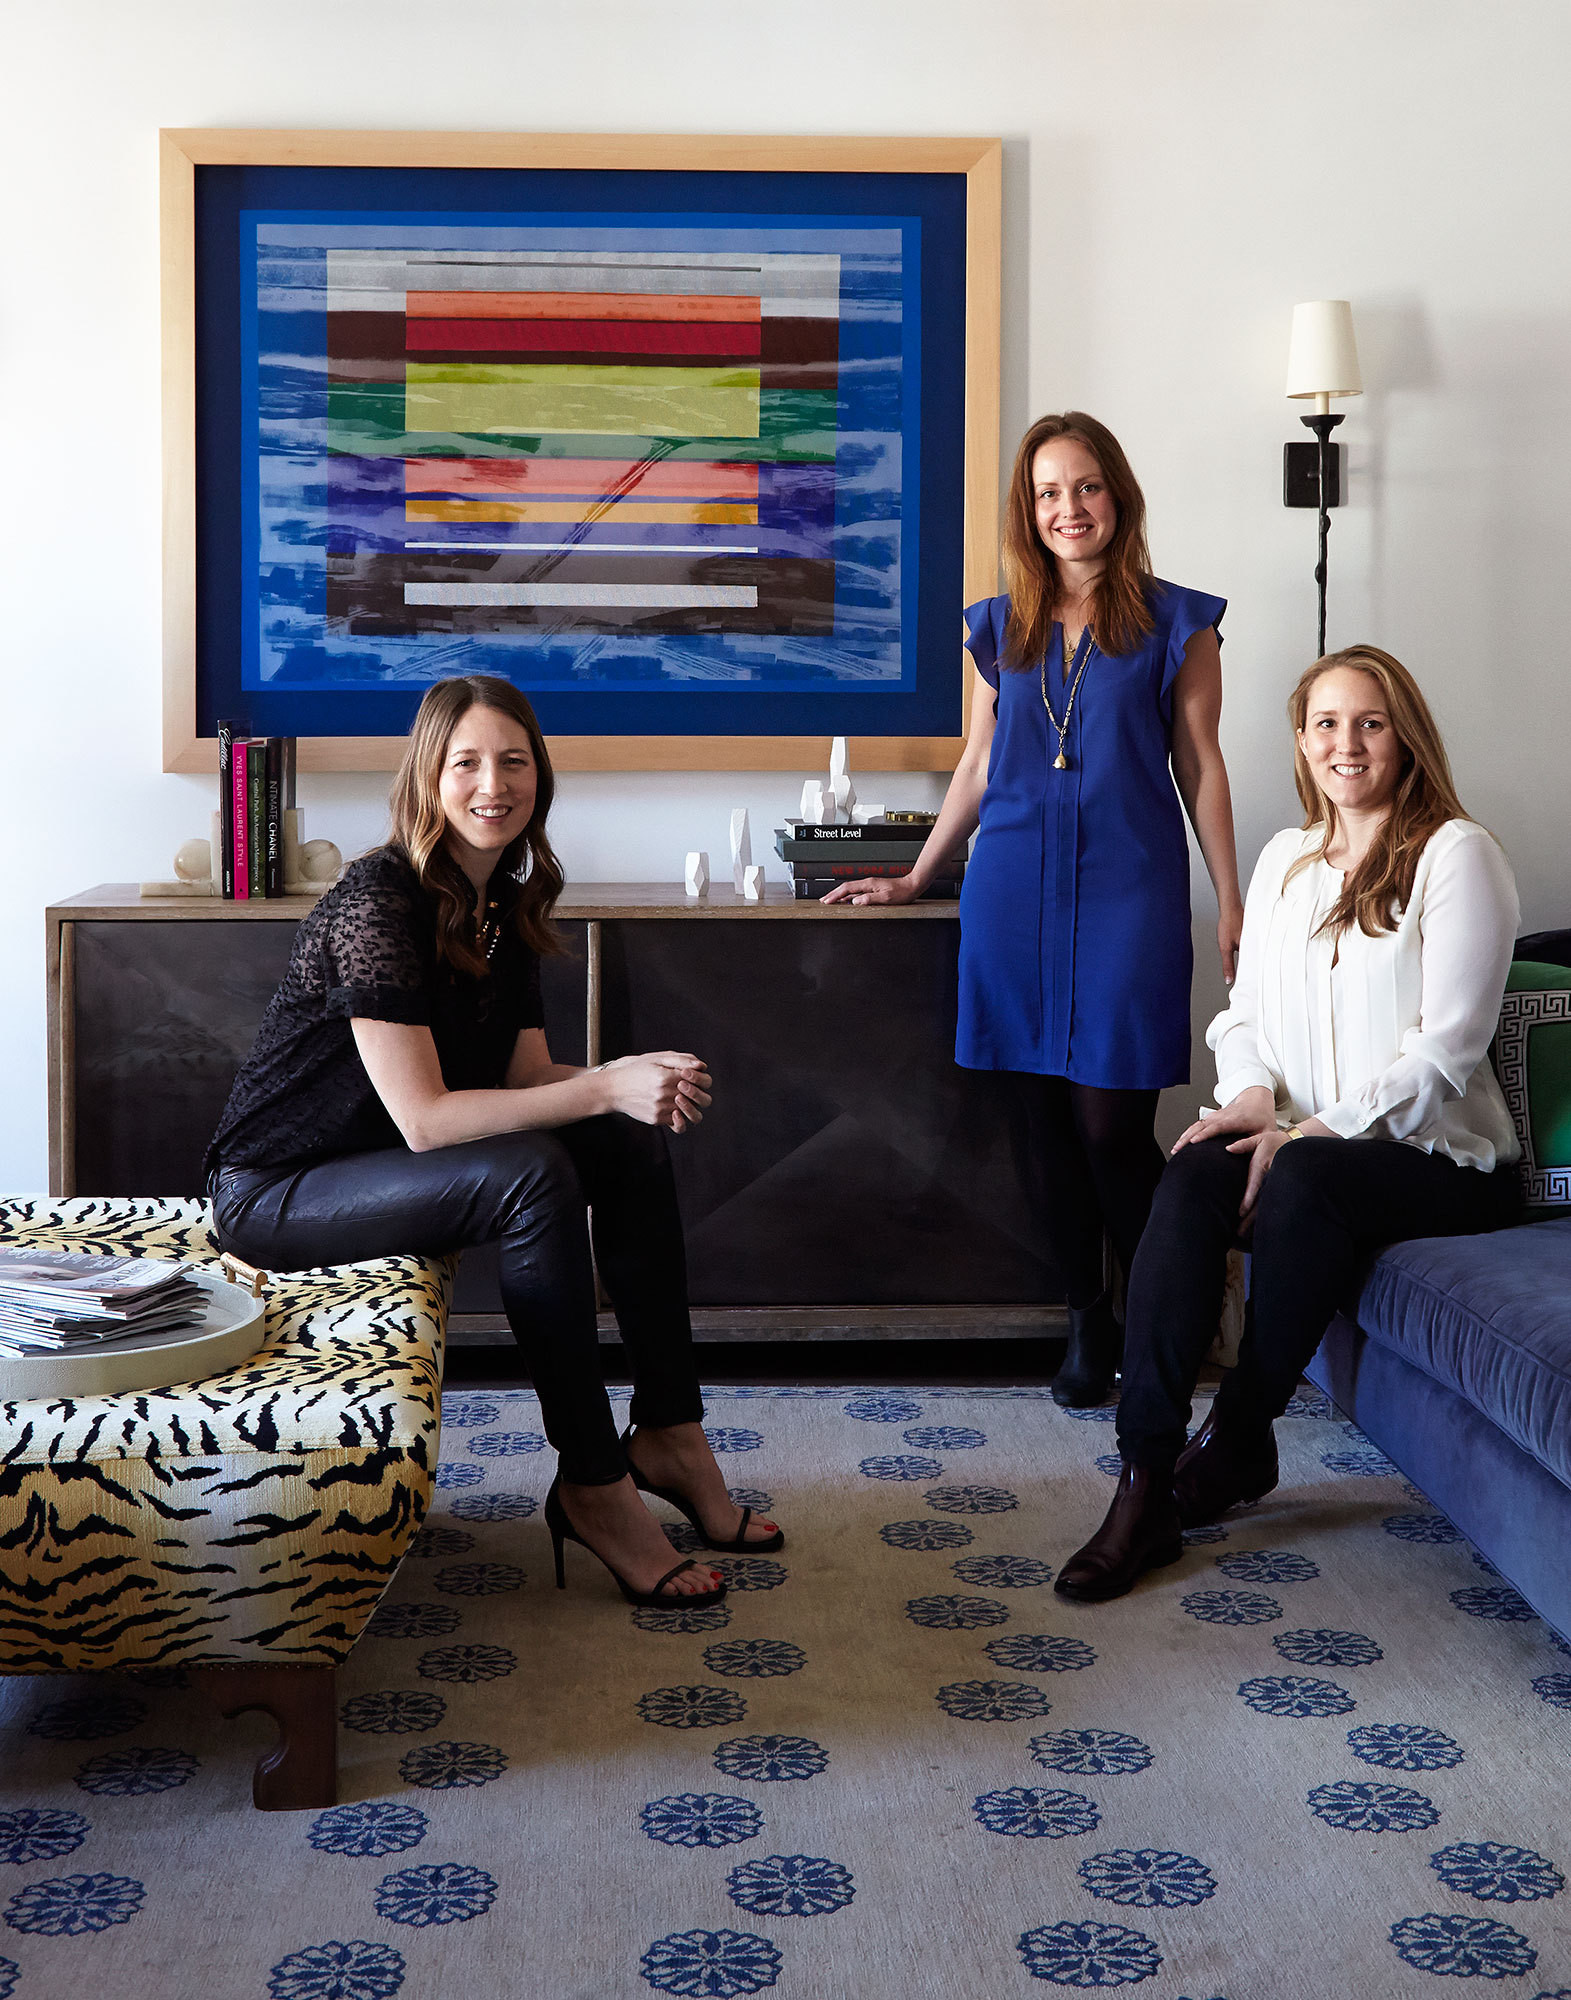 Interior designers Jenny Vorhoff and Britt Zunino and Kate Gray in the living room of their completed Tribeca loft project.